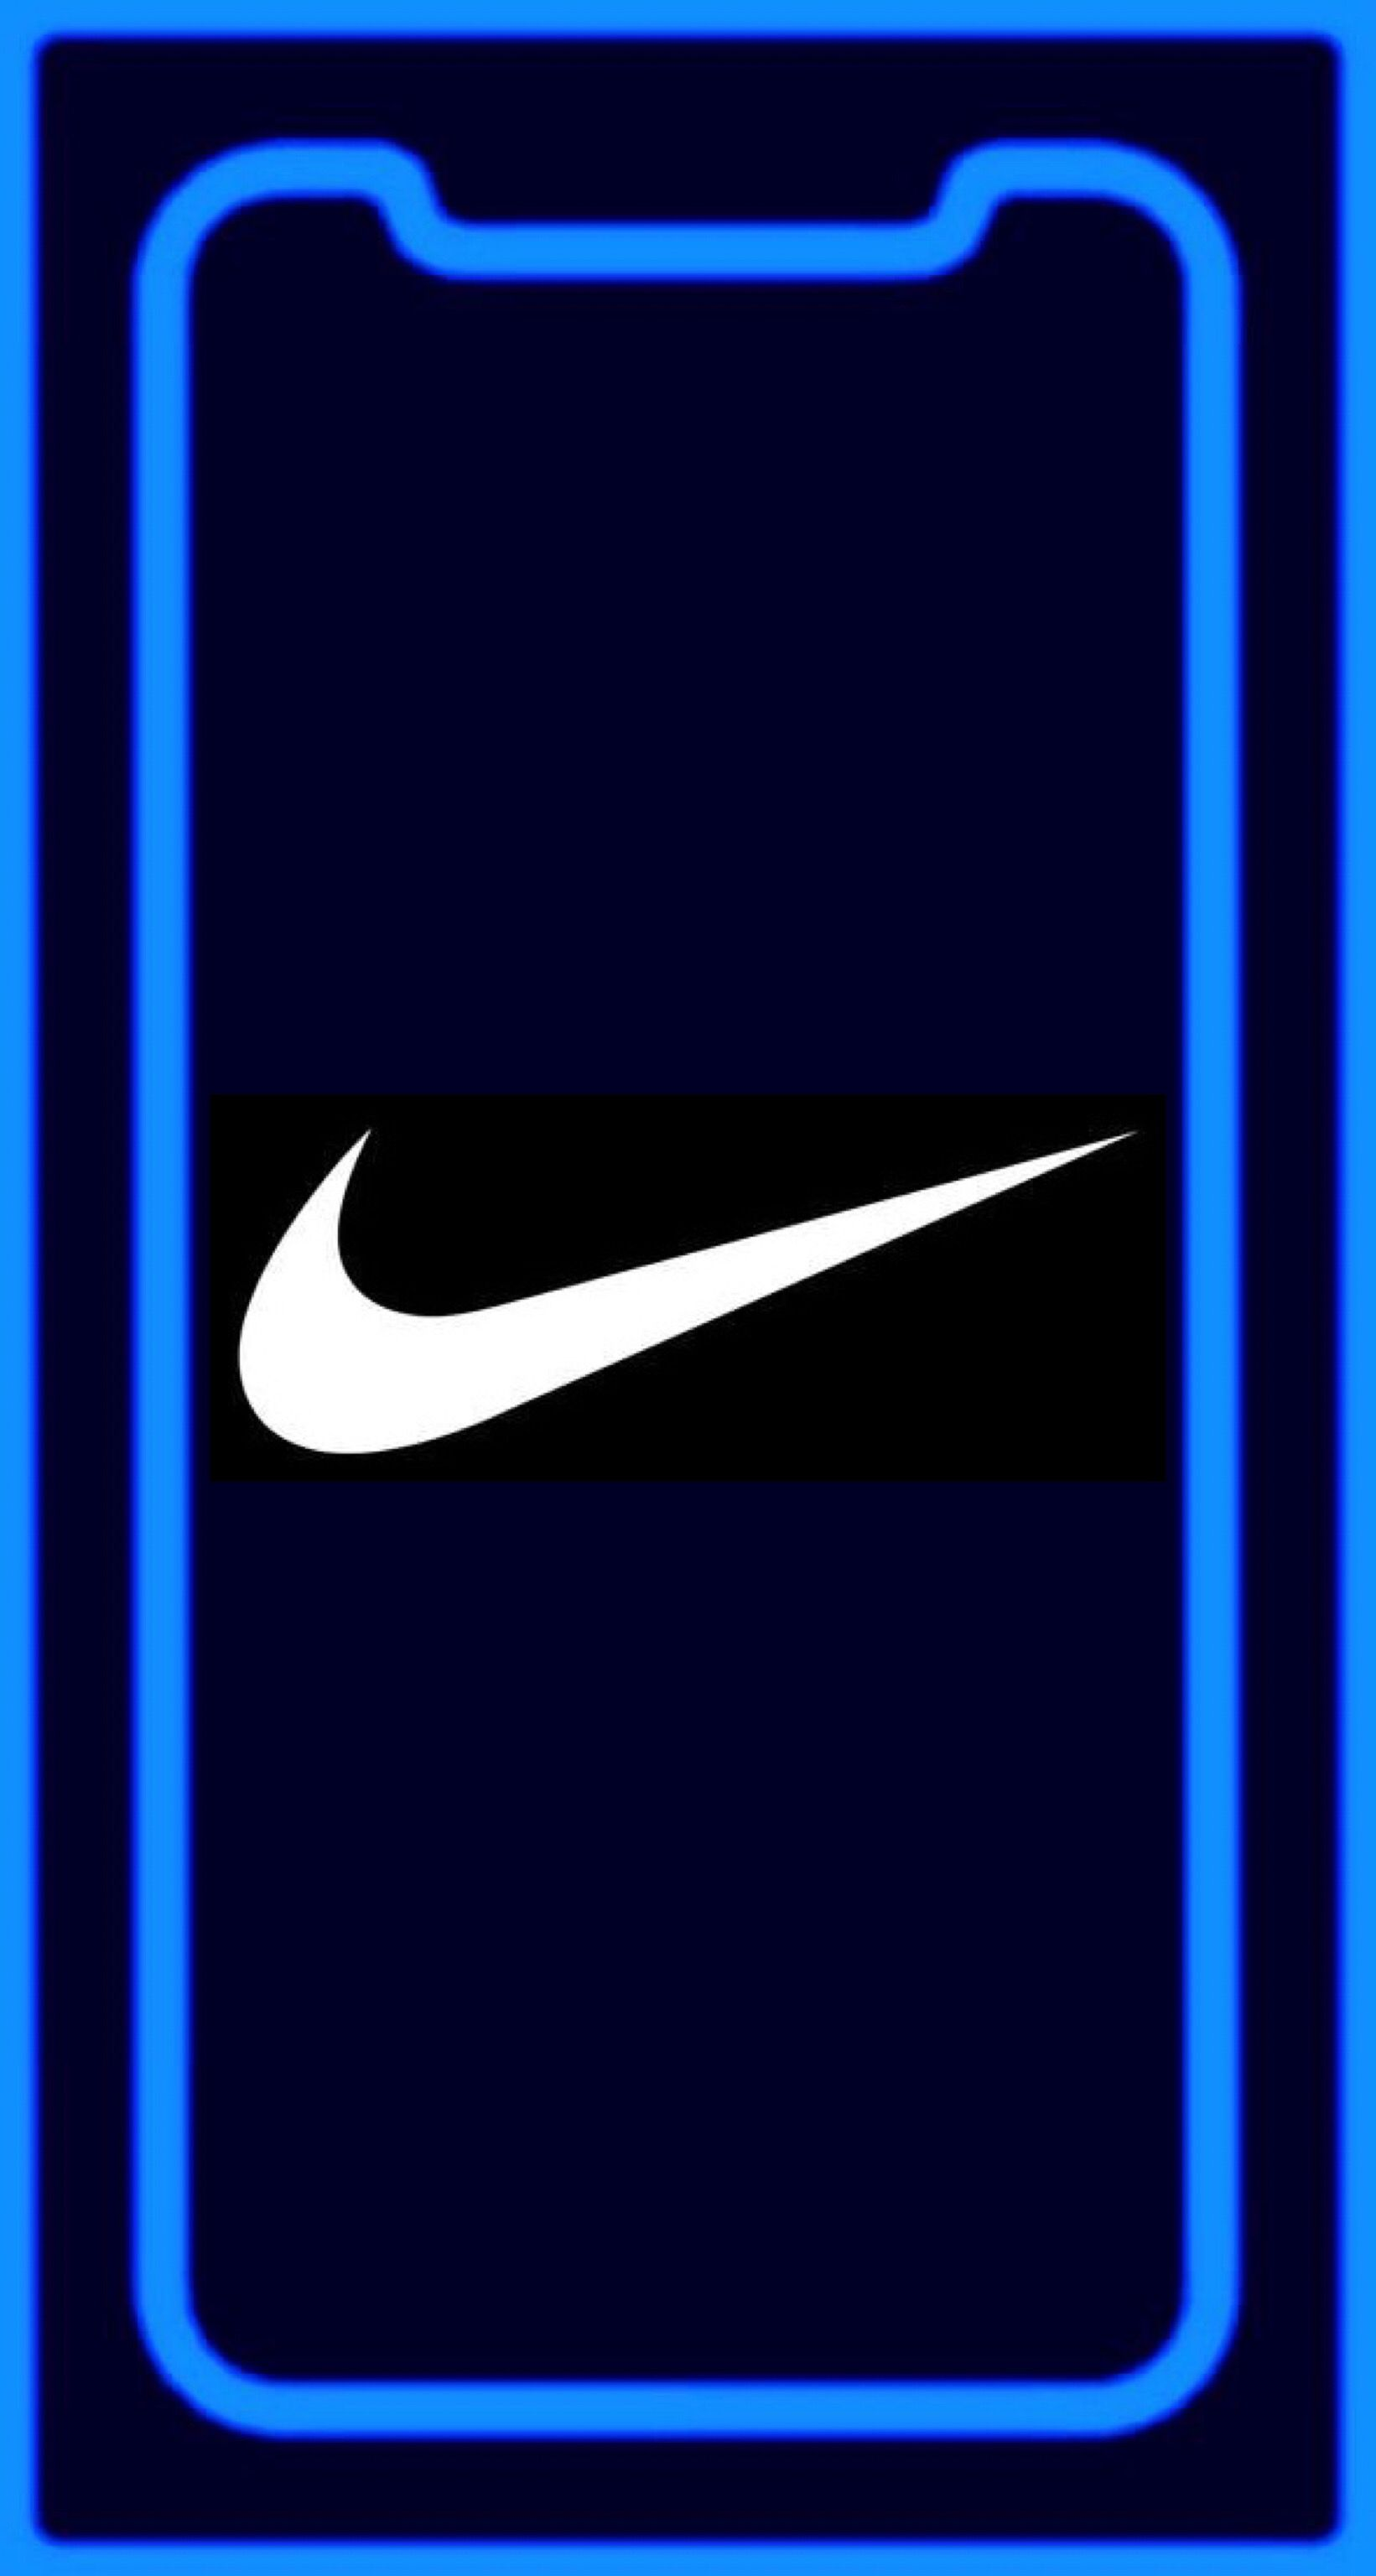 Pin By Andrzej Czapiga On Mix Nike Wallpaper Nike Background Nike Wallpaper Iphone